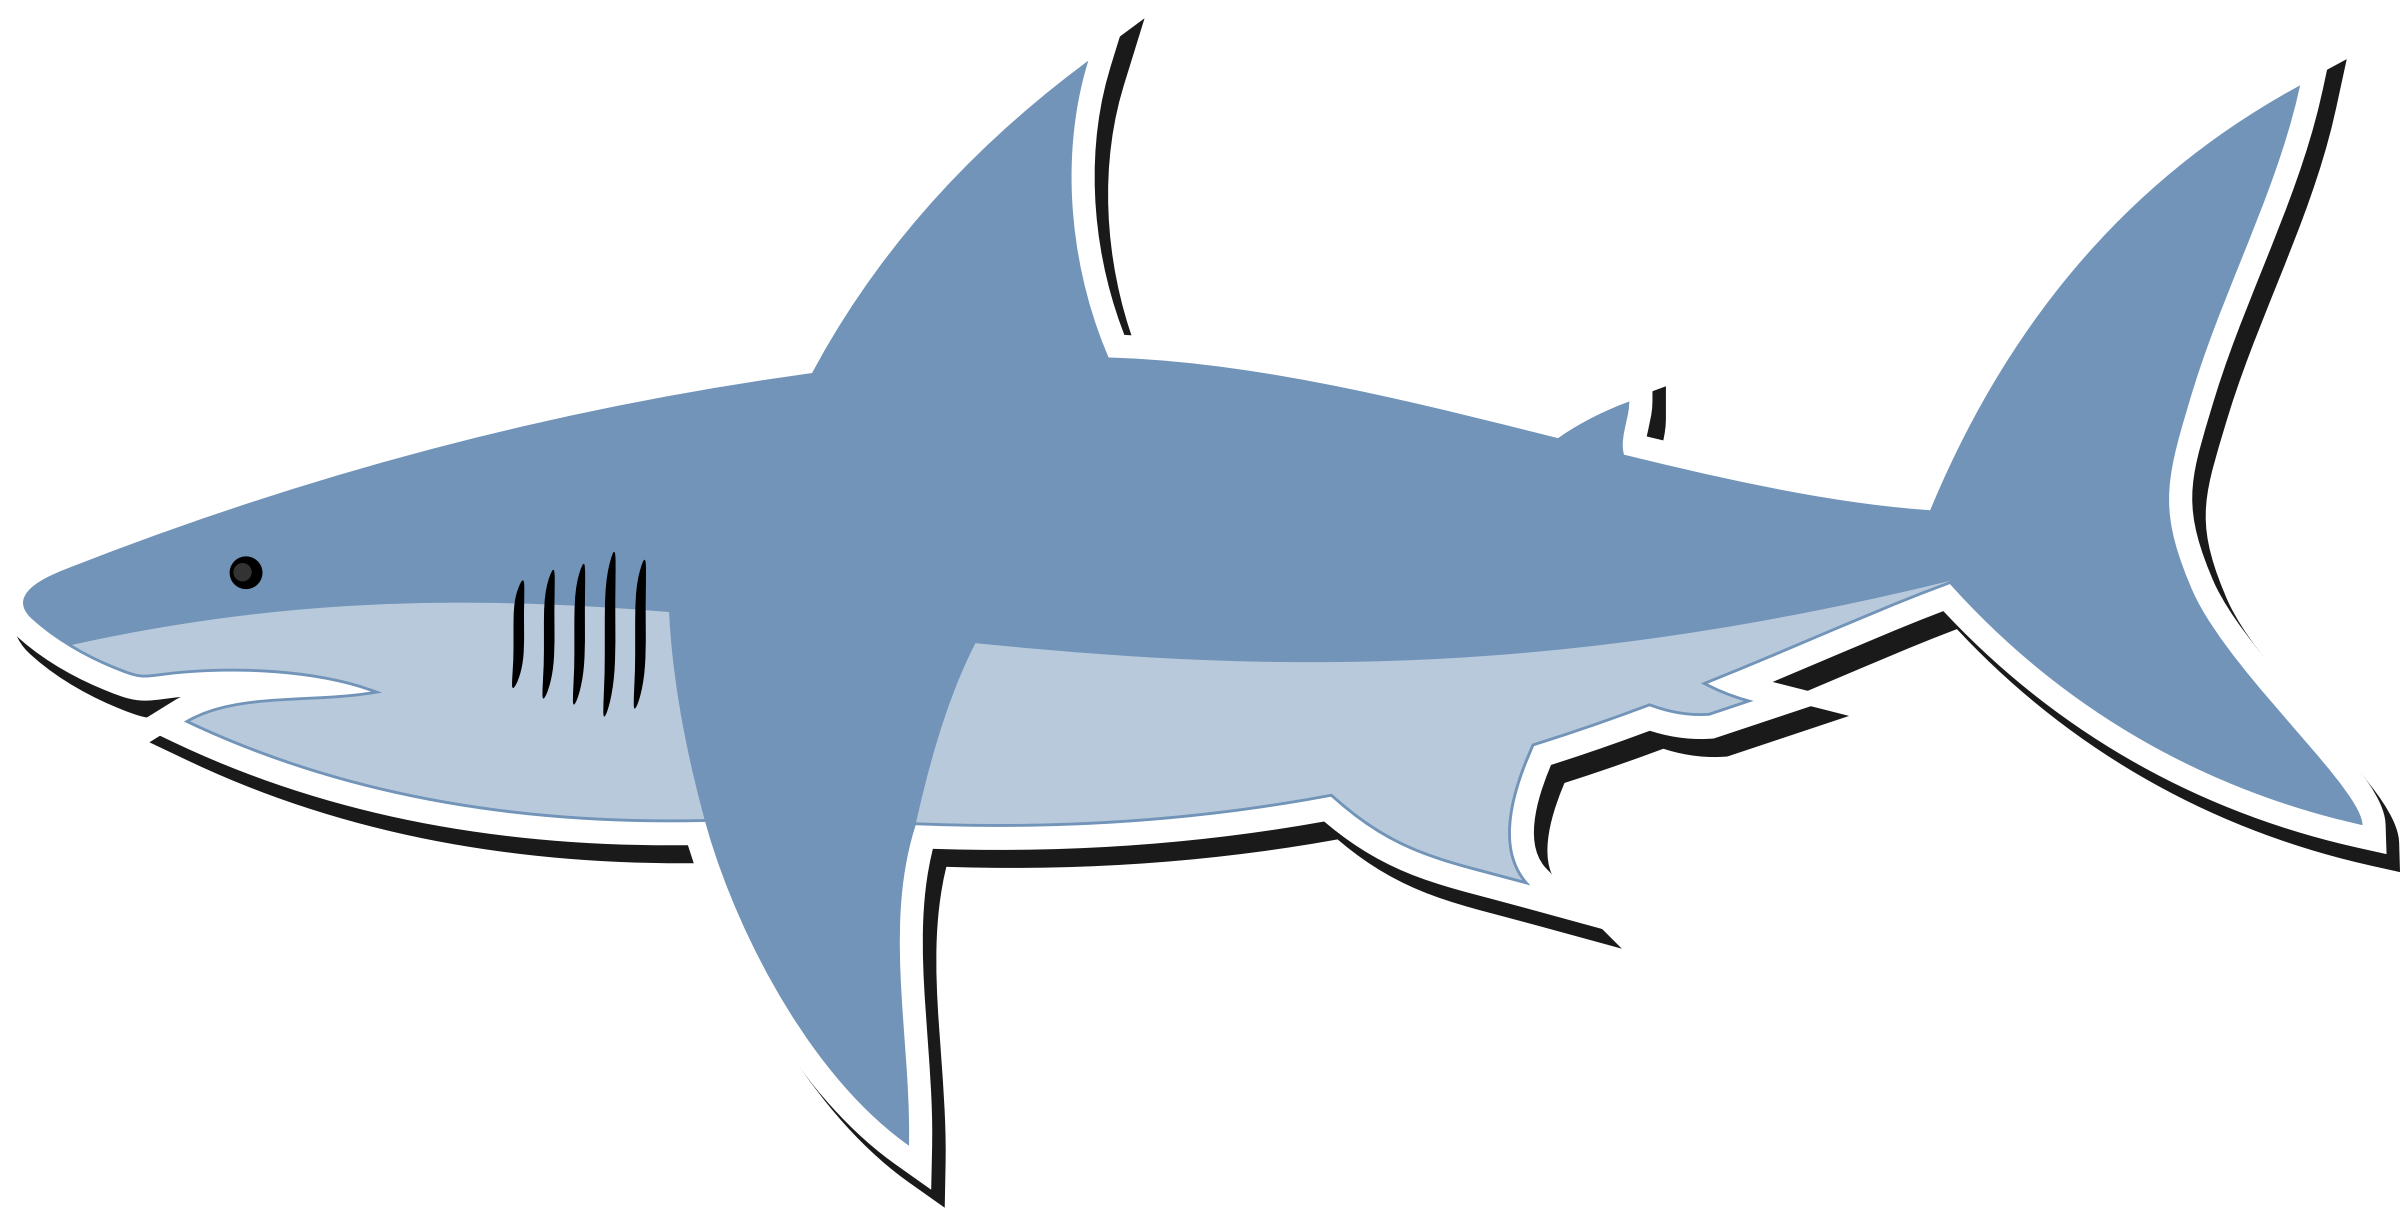 png transparent stock Shark clipart. Bull water free on.